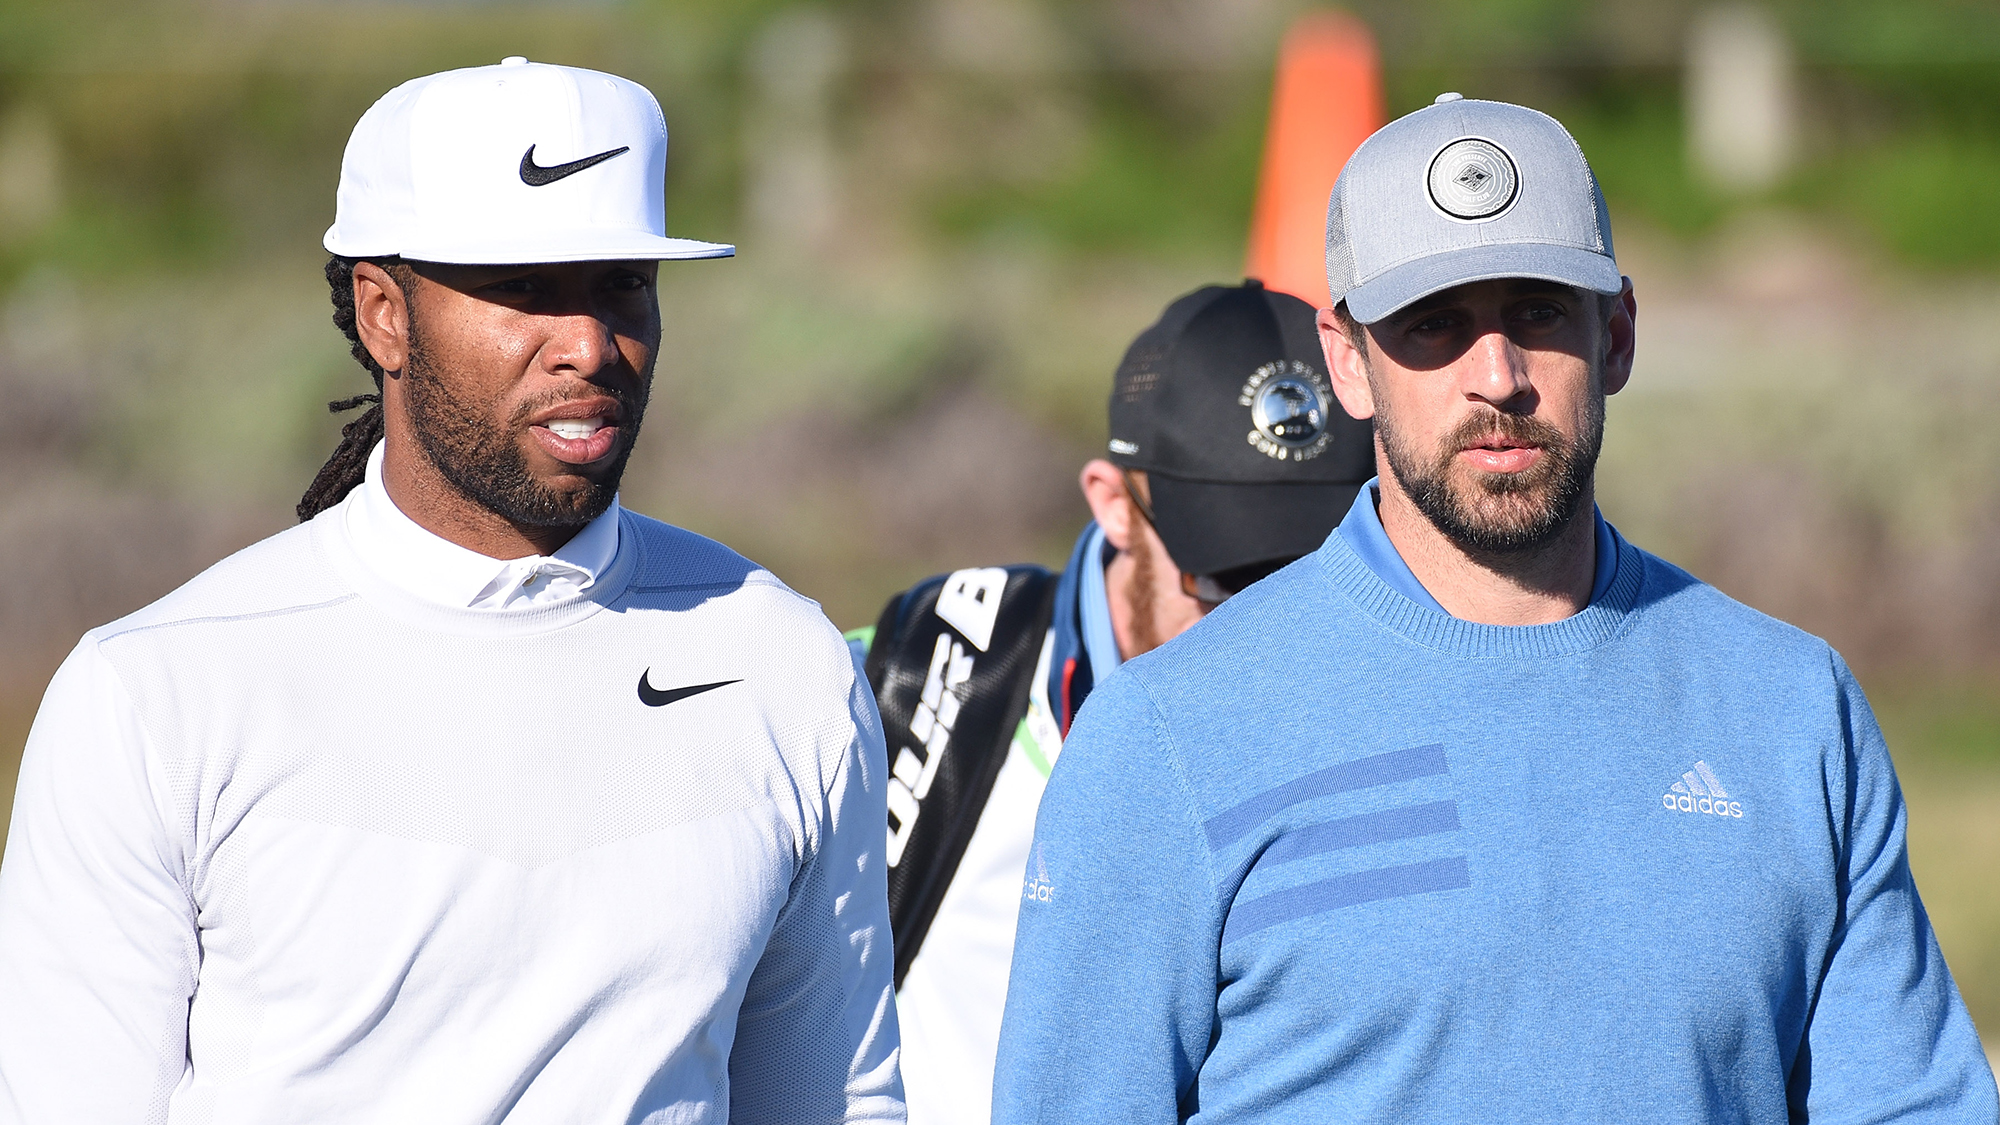 NFL NBA Players will face off in the Showdown, a Ryder Cup-style golf competition